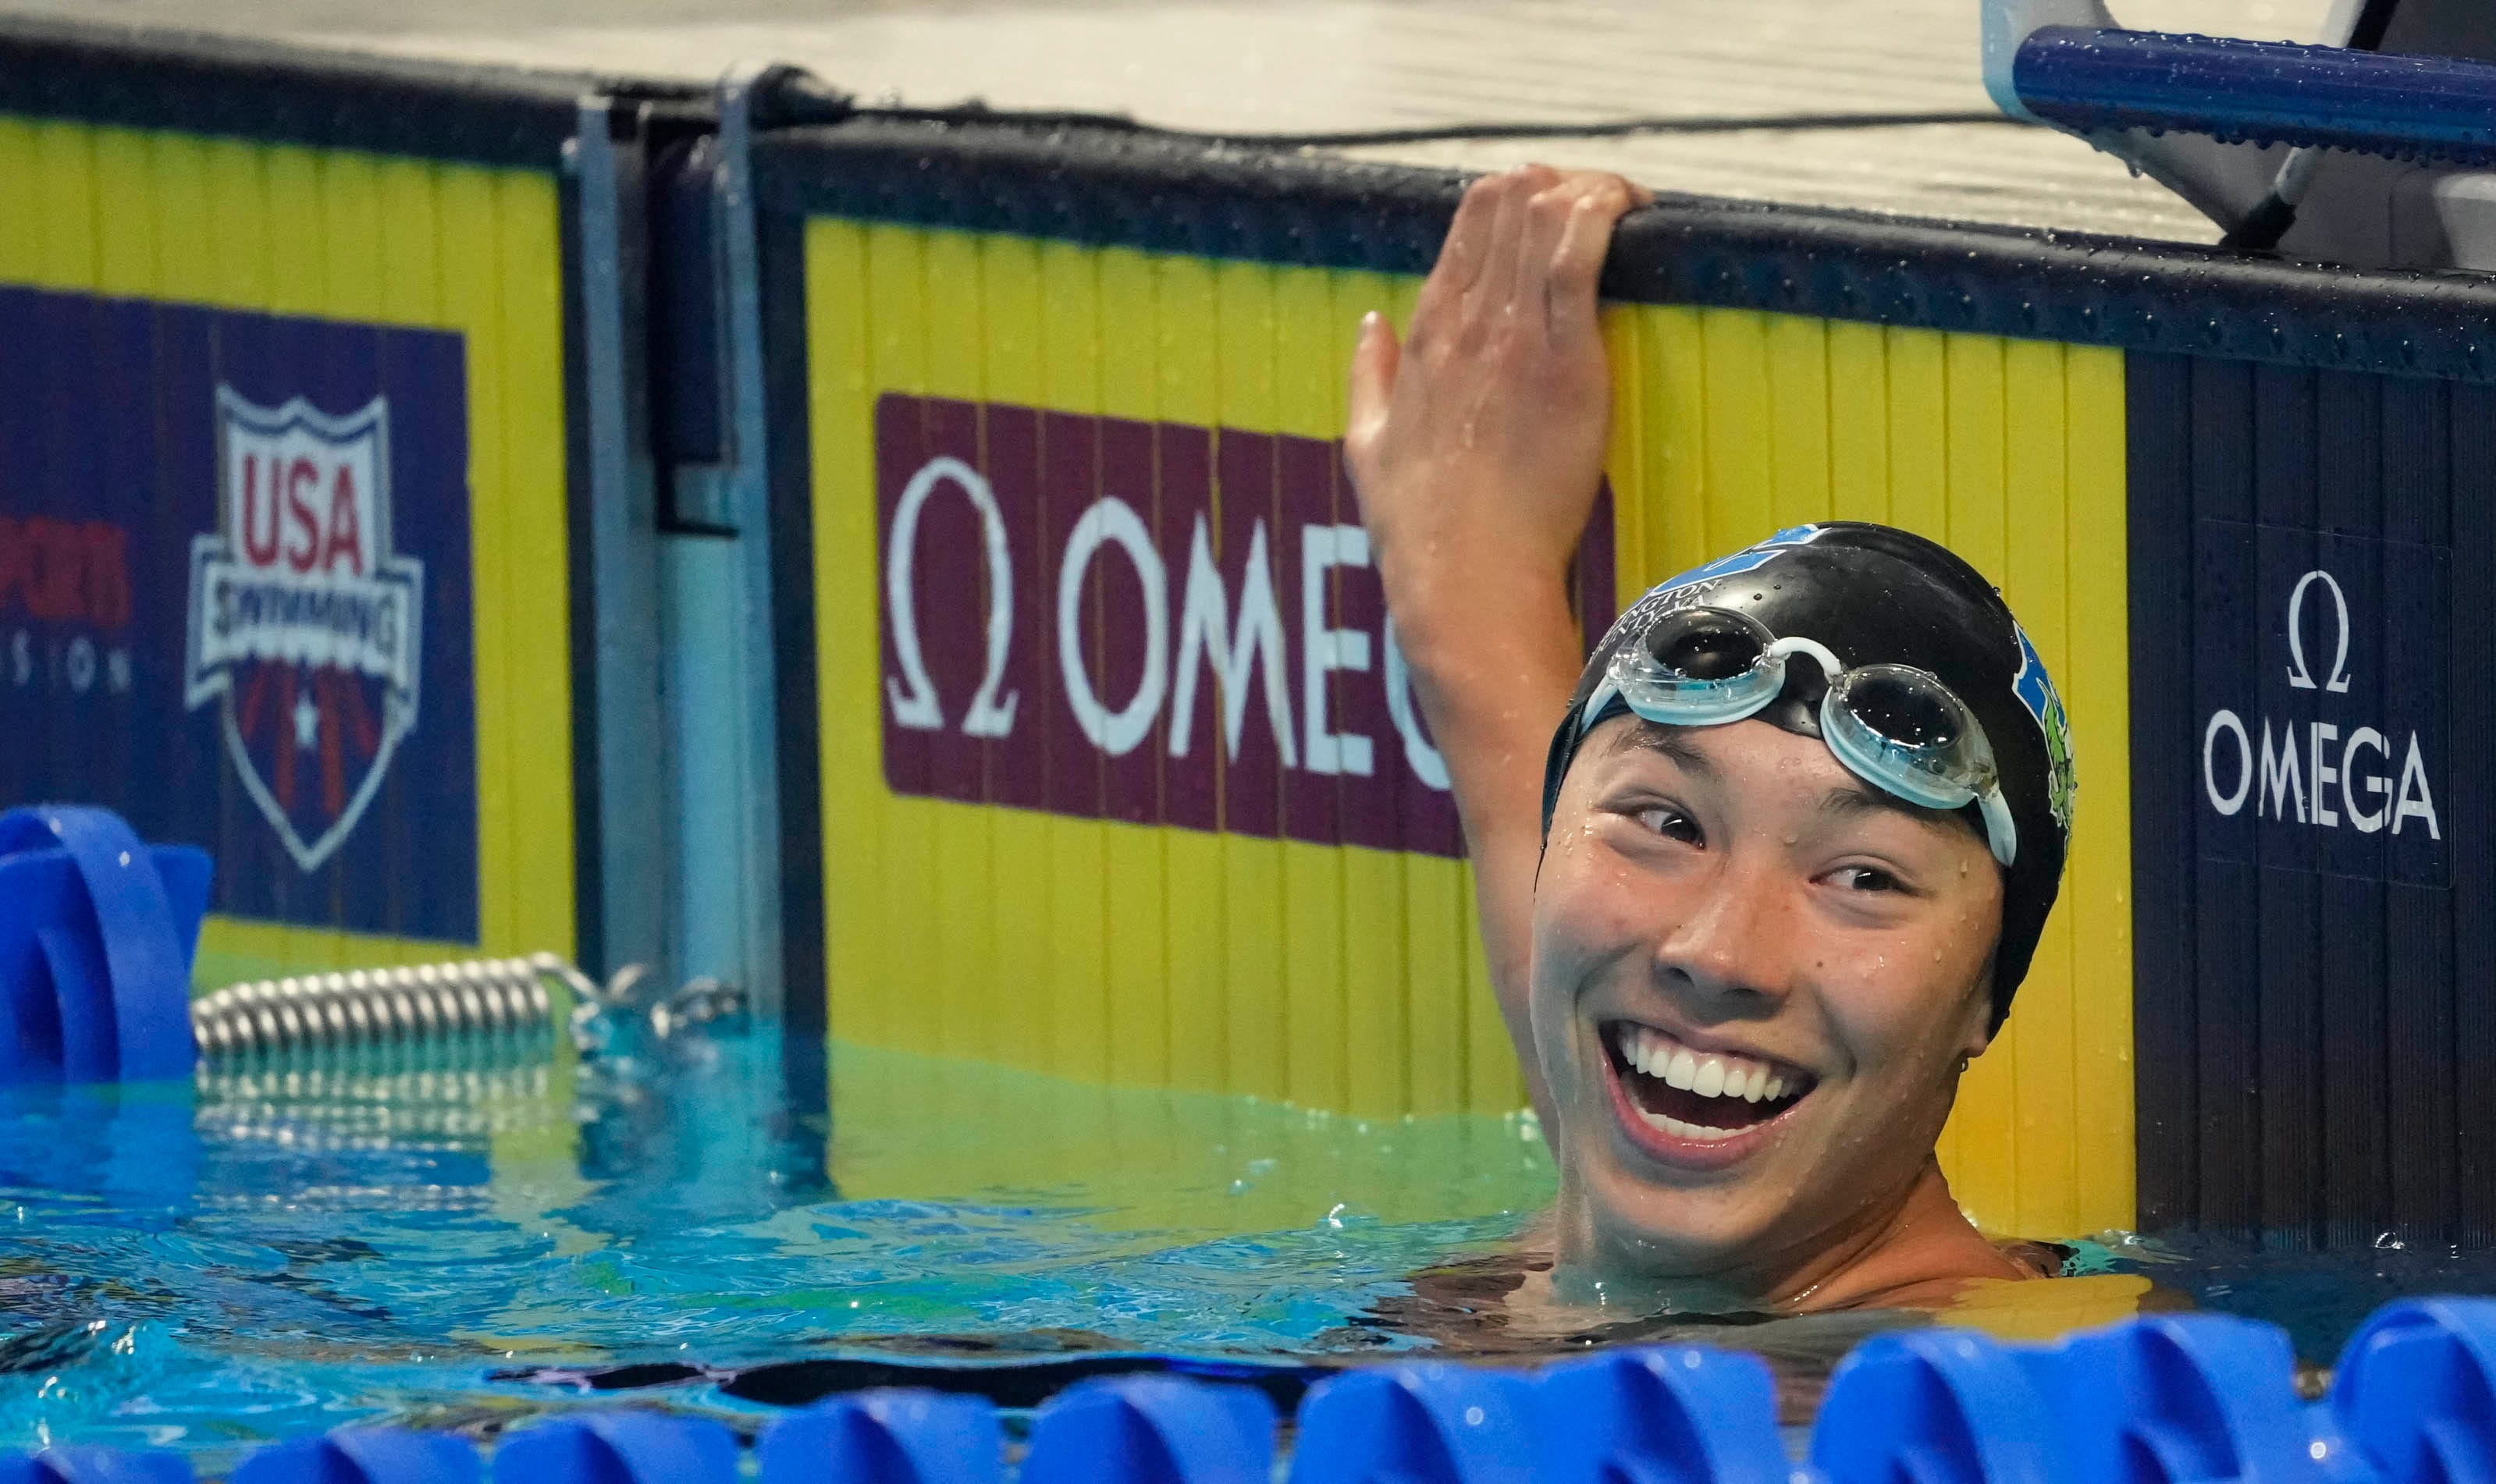 Torri Huske breaks her American record in butterfly to qualify for Tokyo Olympics